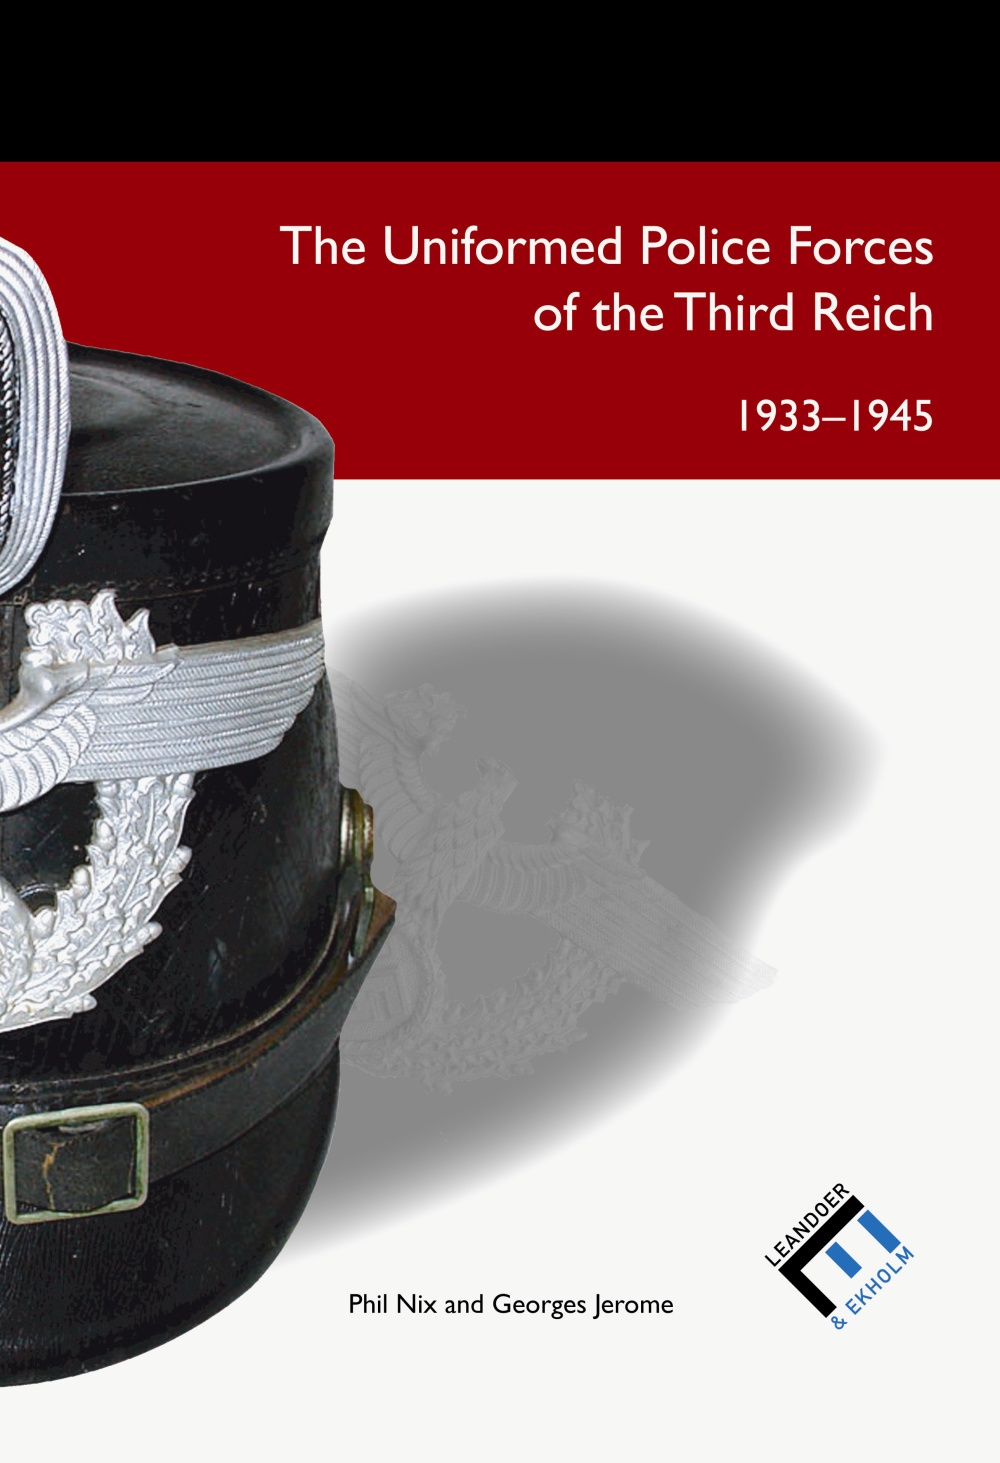 The Uniformed Police Forces Of The Third Reich, 1933 - 1945